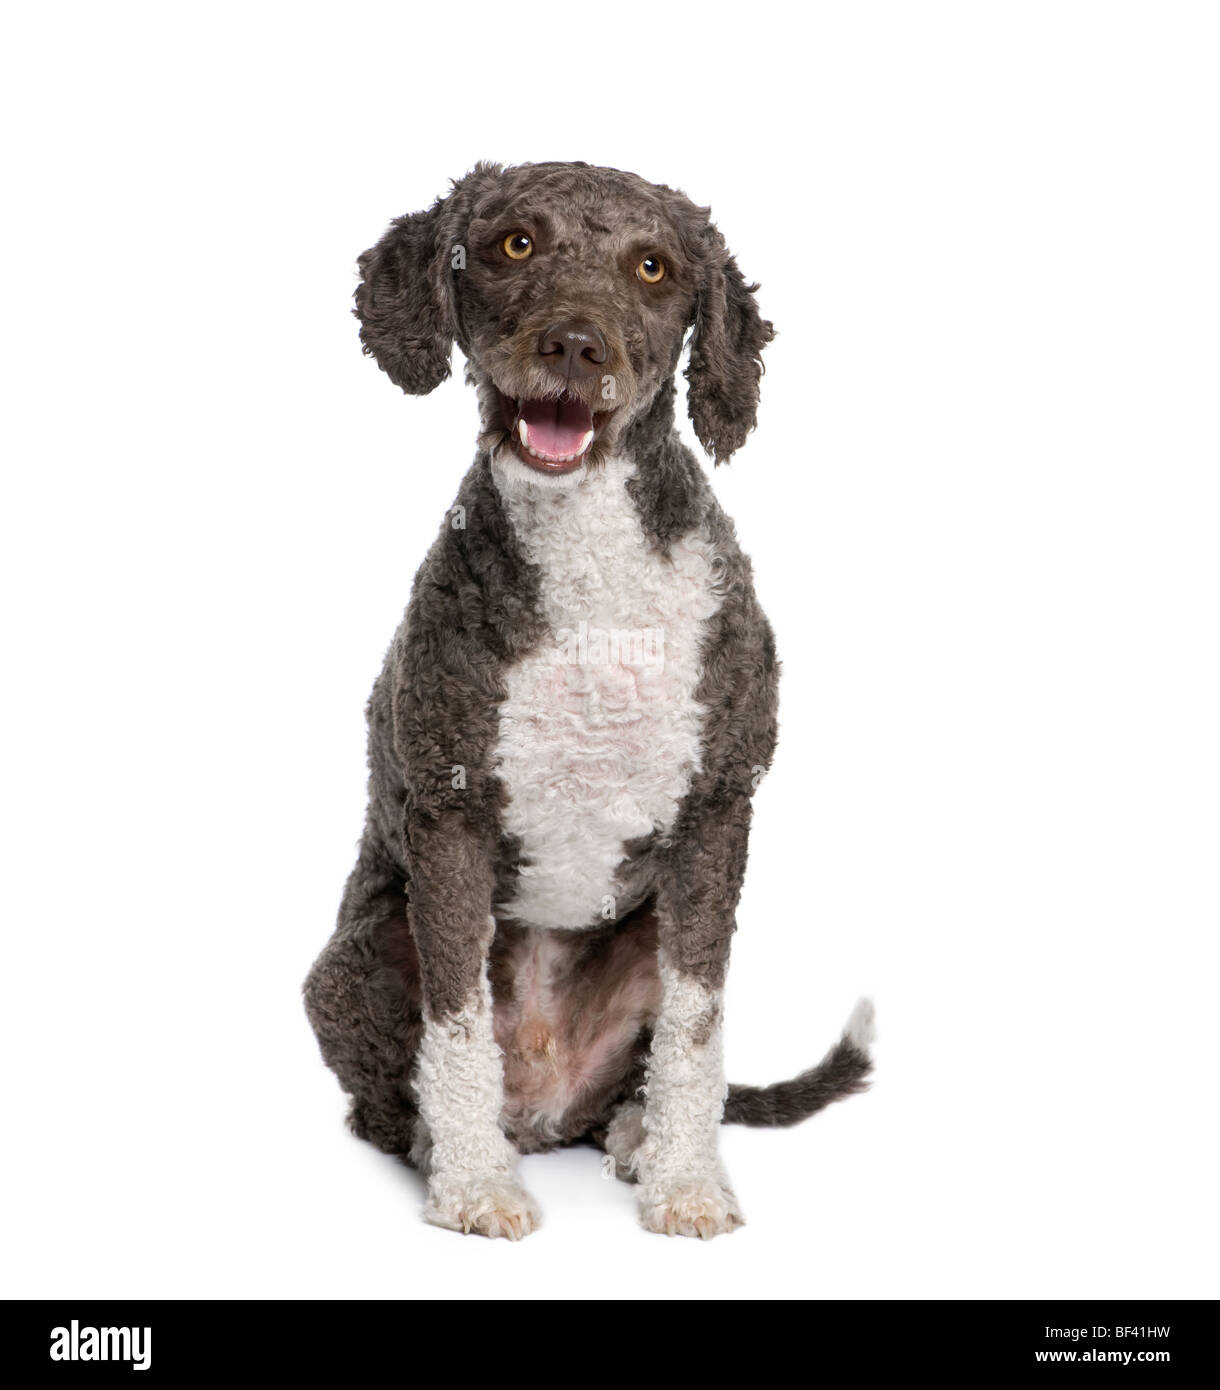 Spanish water spaniel chien, 3 ans, in front of white background, studio shot Photo Stock